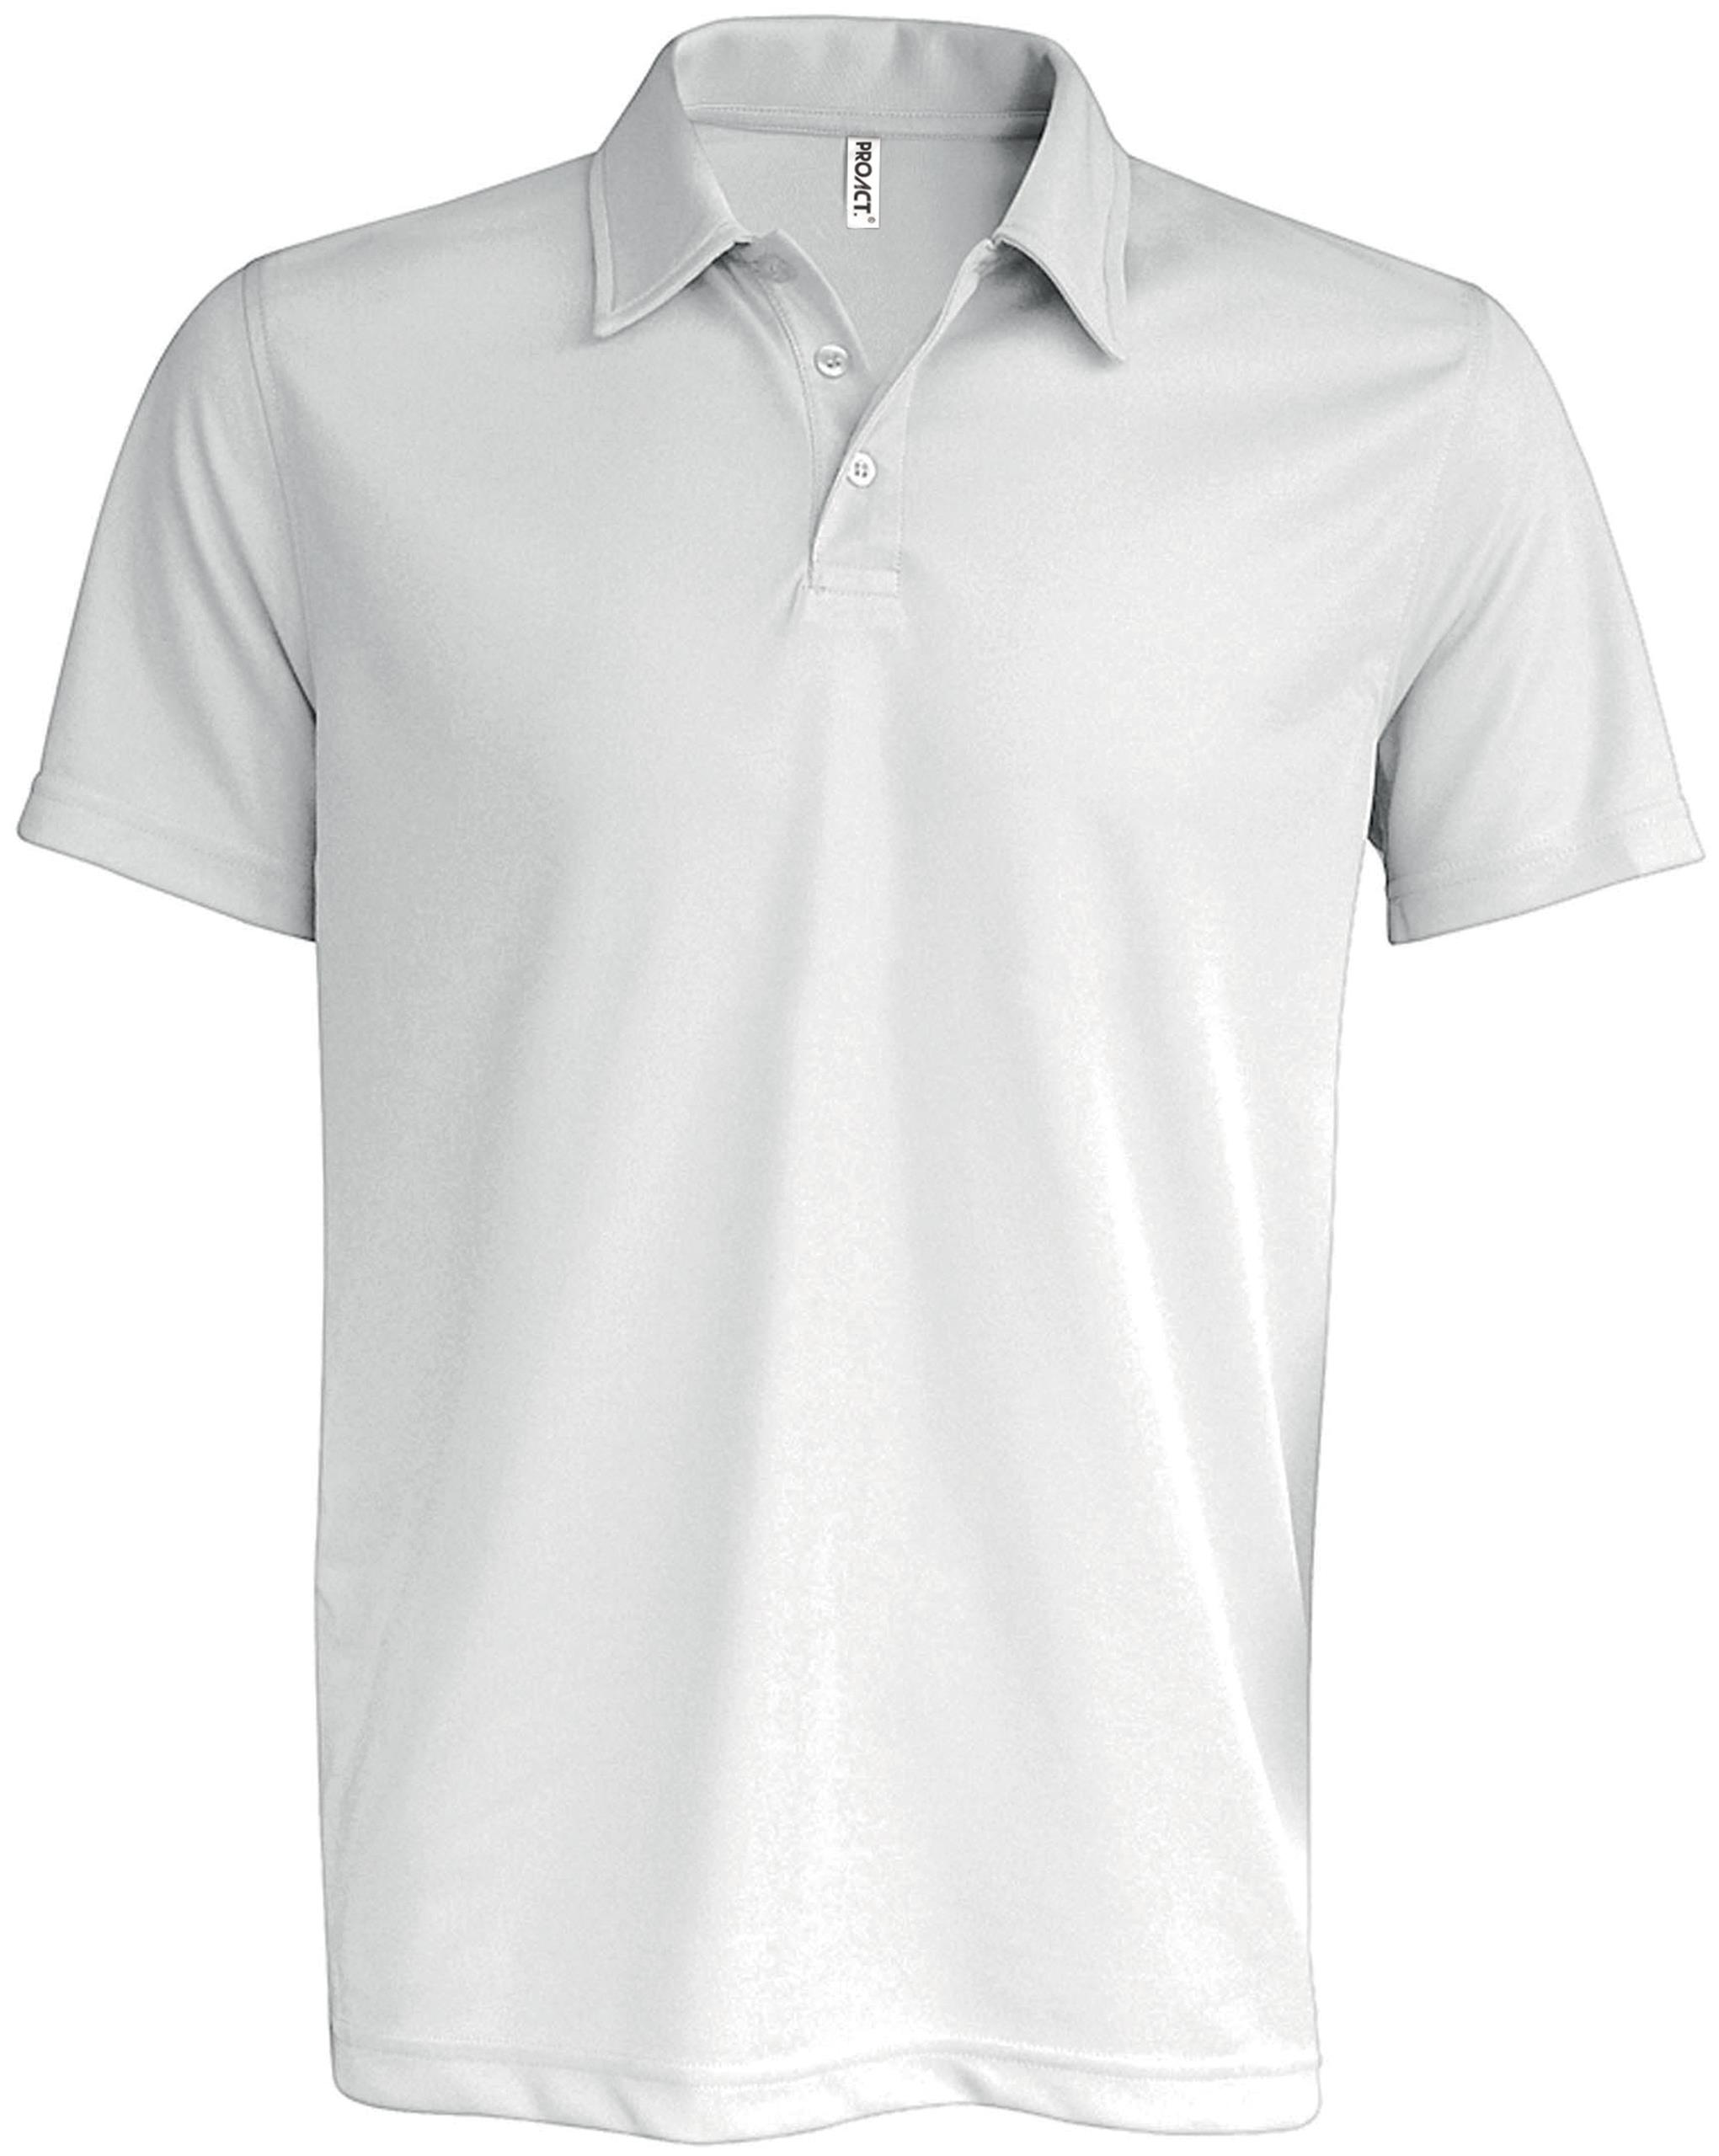 Men's Short-Sleeve Tab-Collar Clergy Shirts - 7 COLORS. $ $ Choose Options. Men's Long-Sleeve Designer Banded Collar Clergy Shirt with White Cuffs - 5 COLORS. Click the button below to add the Men's Short-Sleeve Banded Collar Clergy Shirt - .